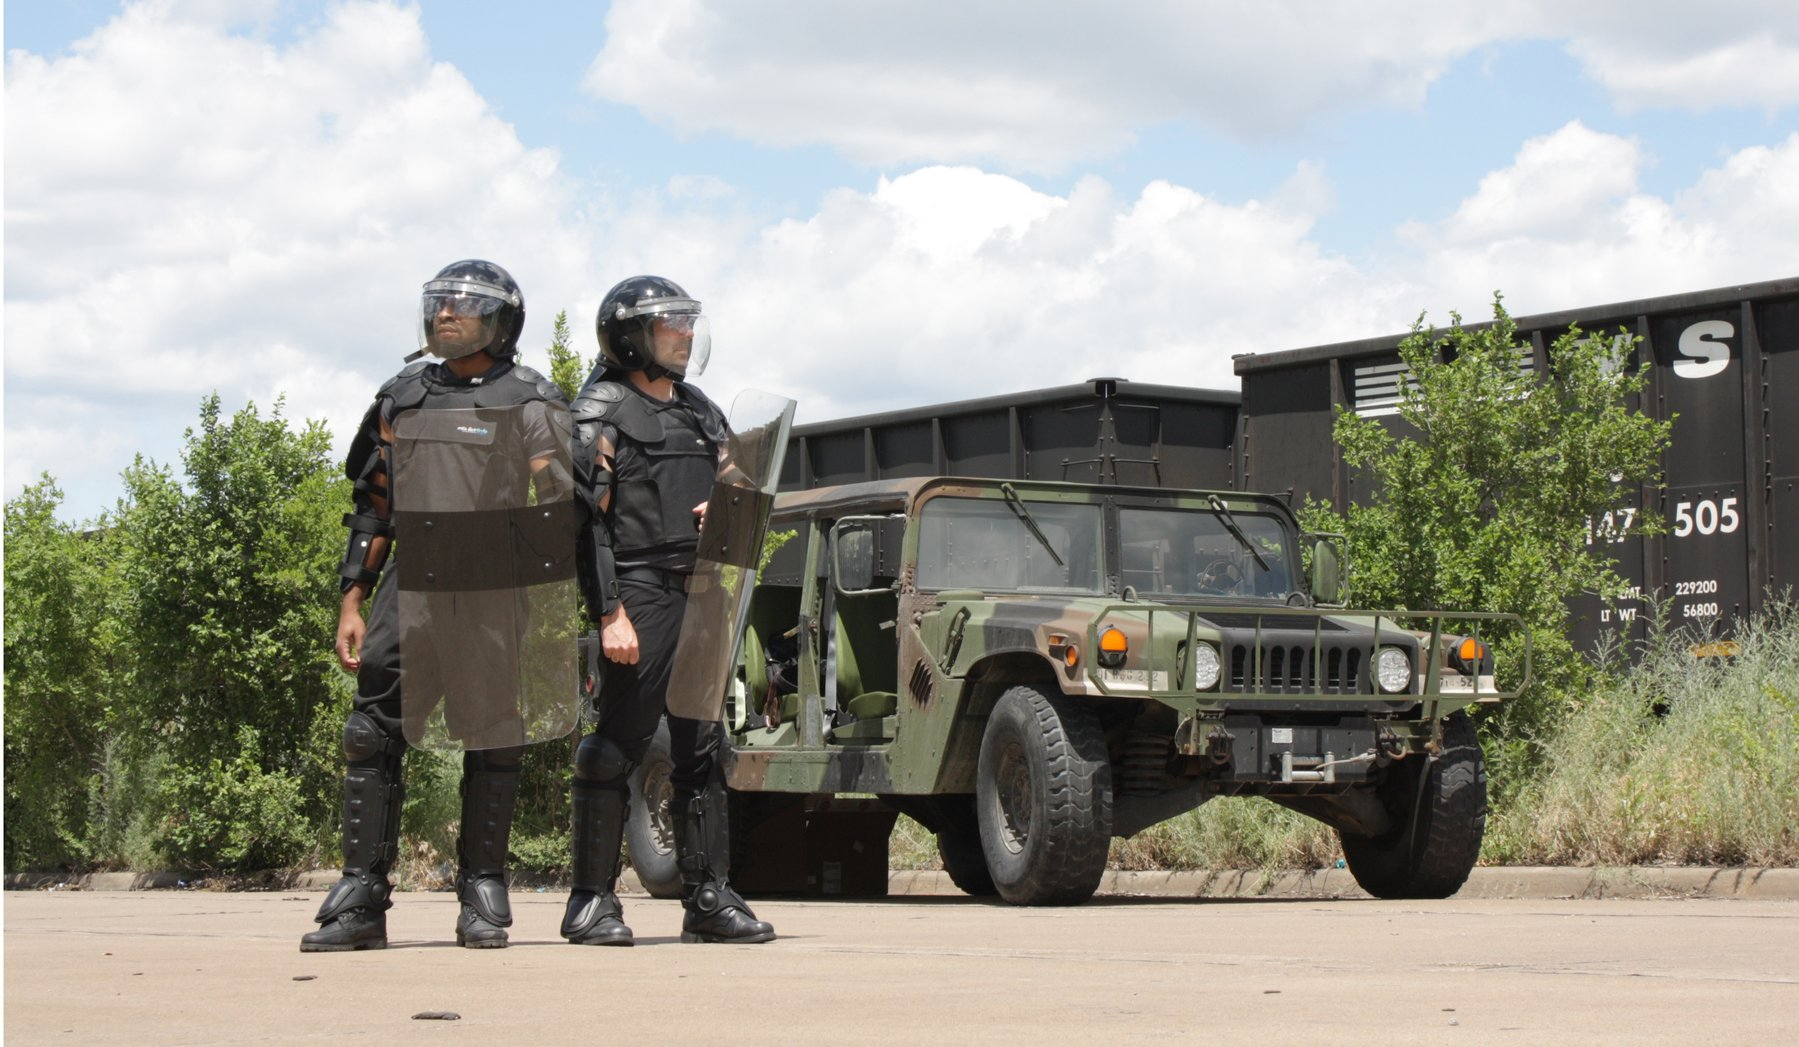 Two men standing near an army truck wearing a riot gear bundle